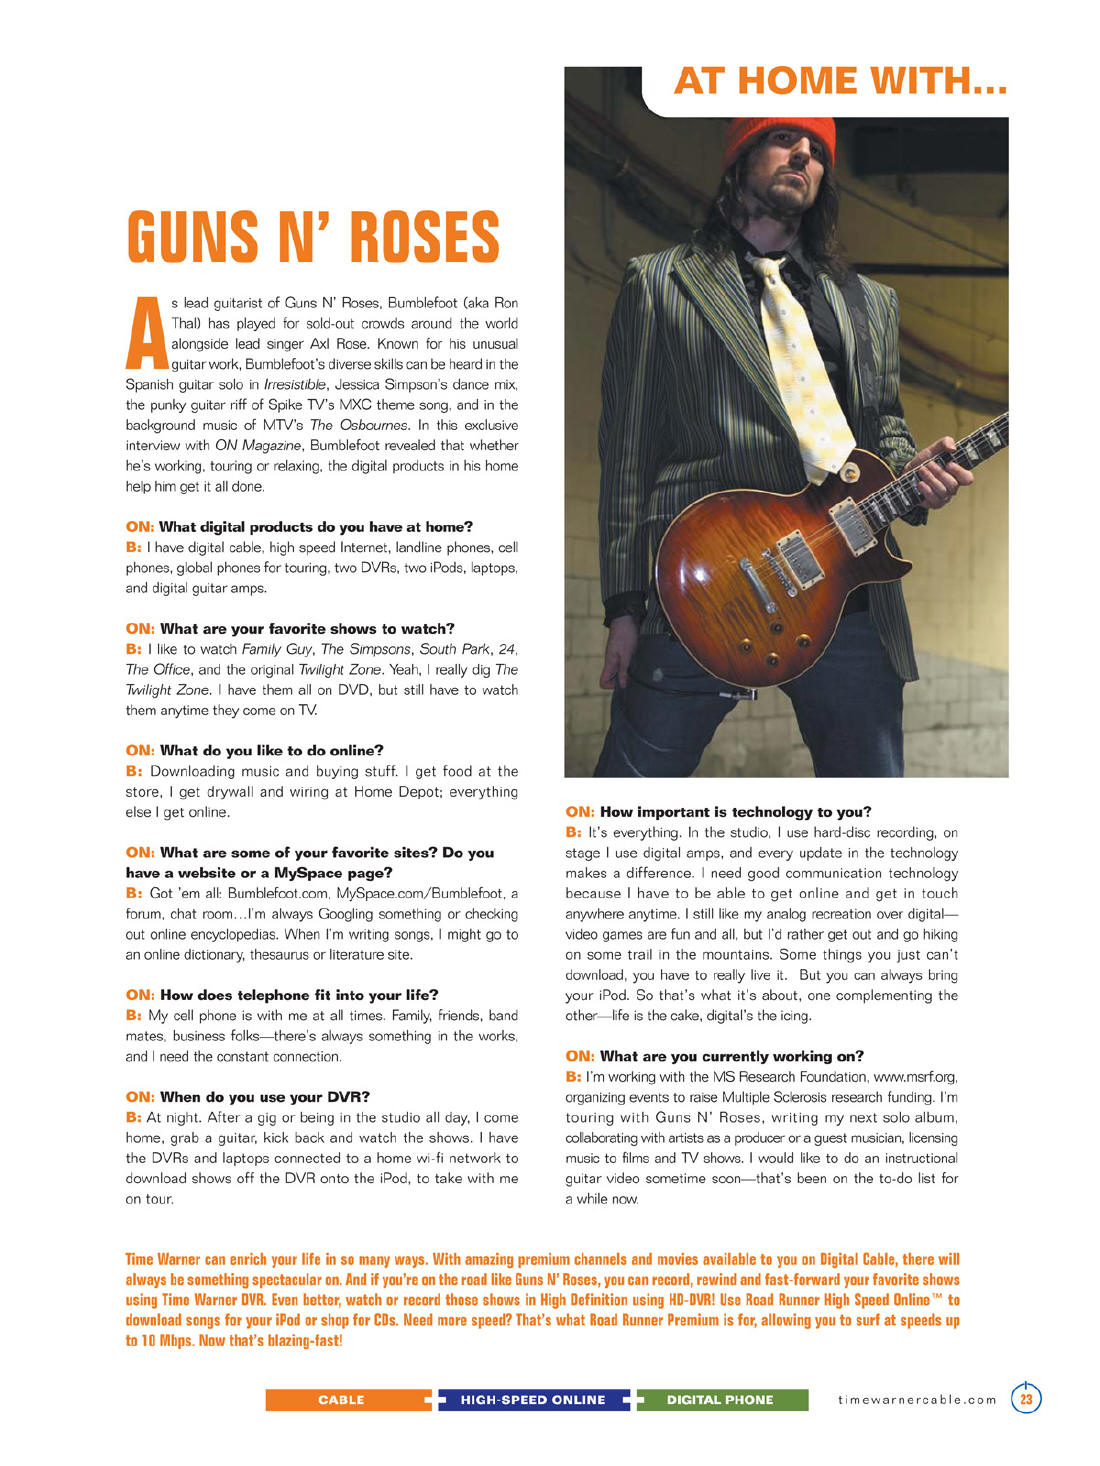 2007.08.DD - On Magazine - At Home With... Guns N' Roses (Bumblefoot) 20070810